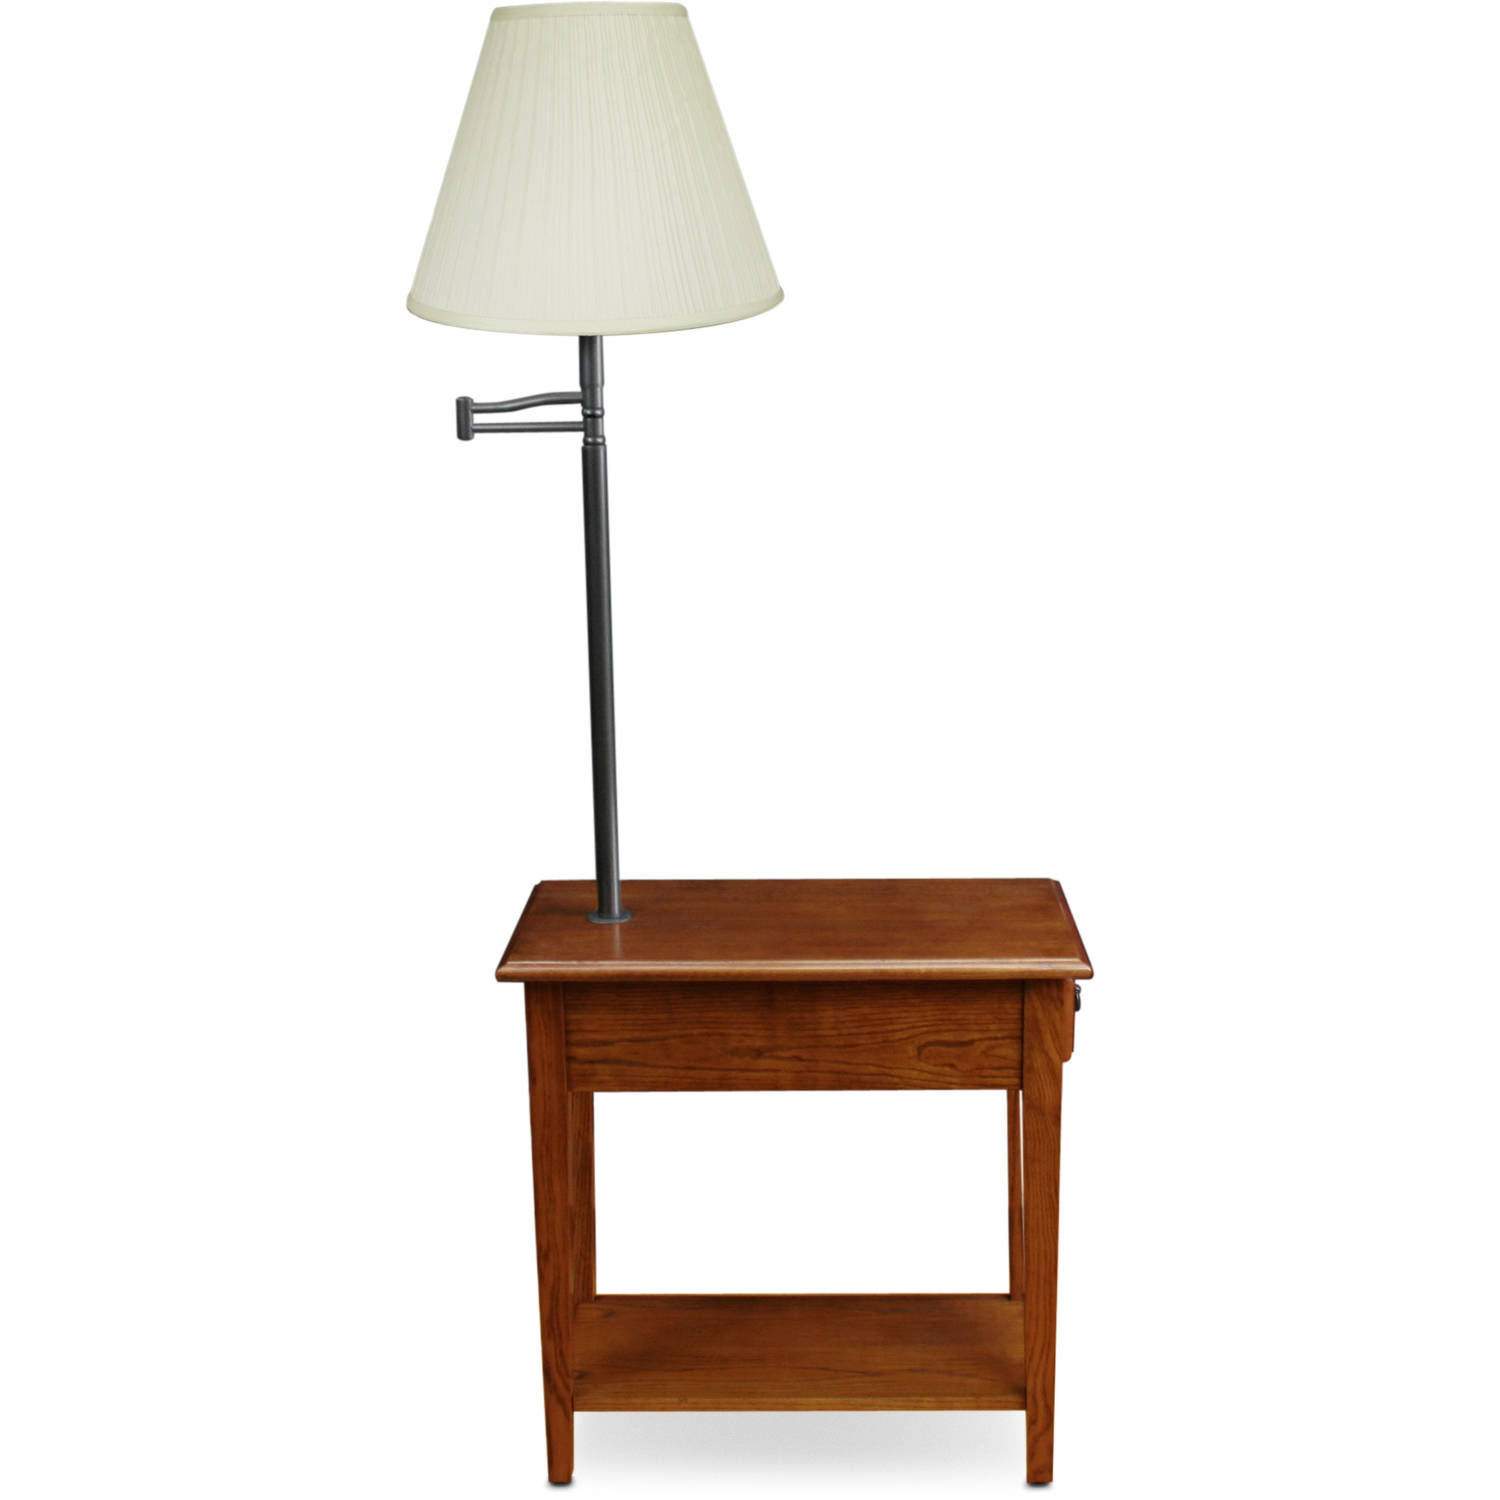 High End Table Lamps For Living Room 10 Reasons To Buy End Tables With Lamps Attached Warisan